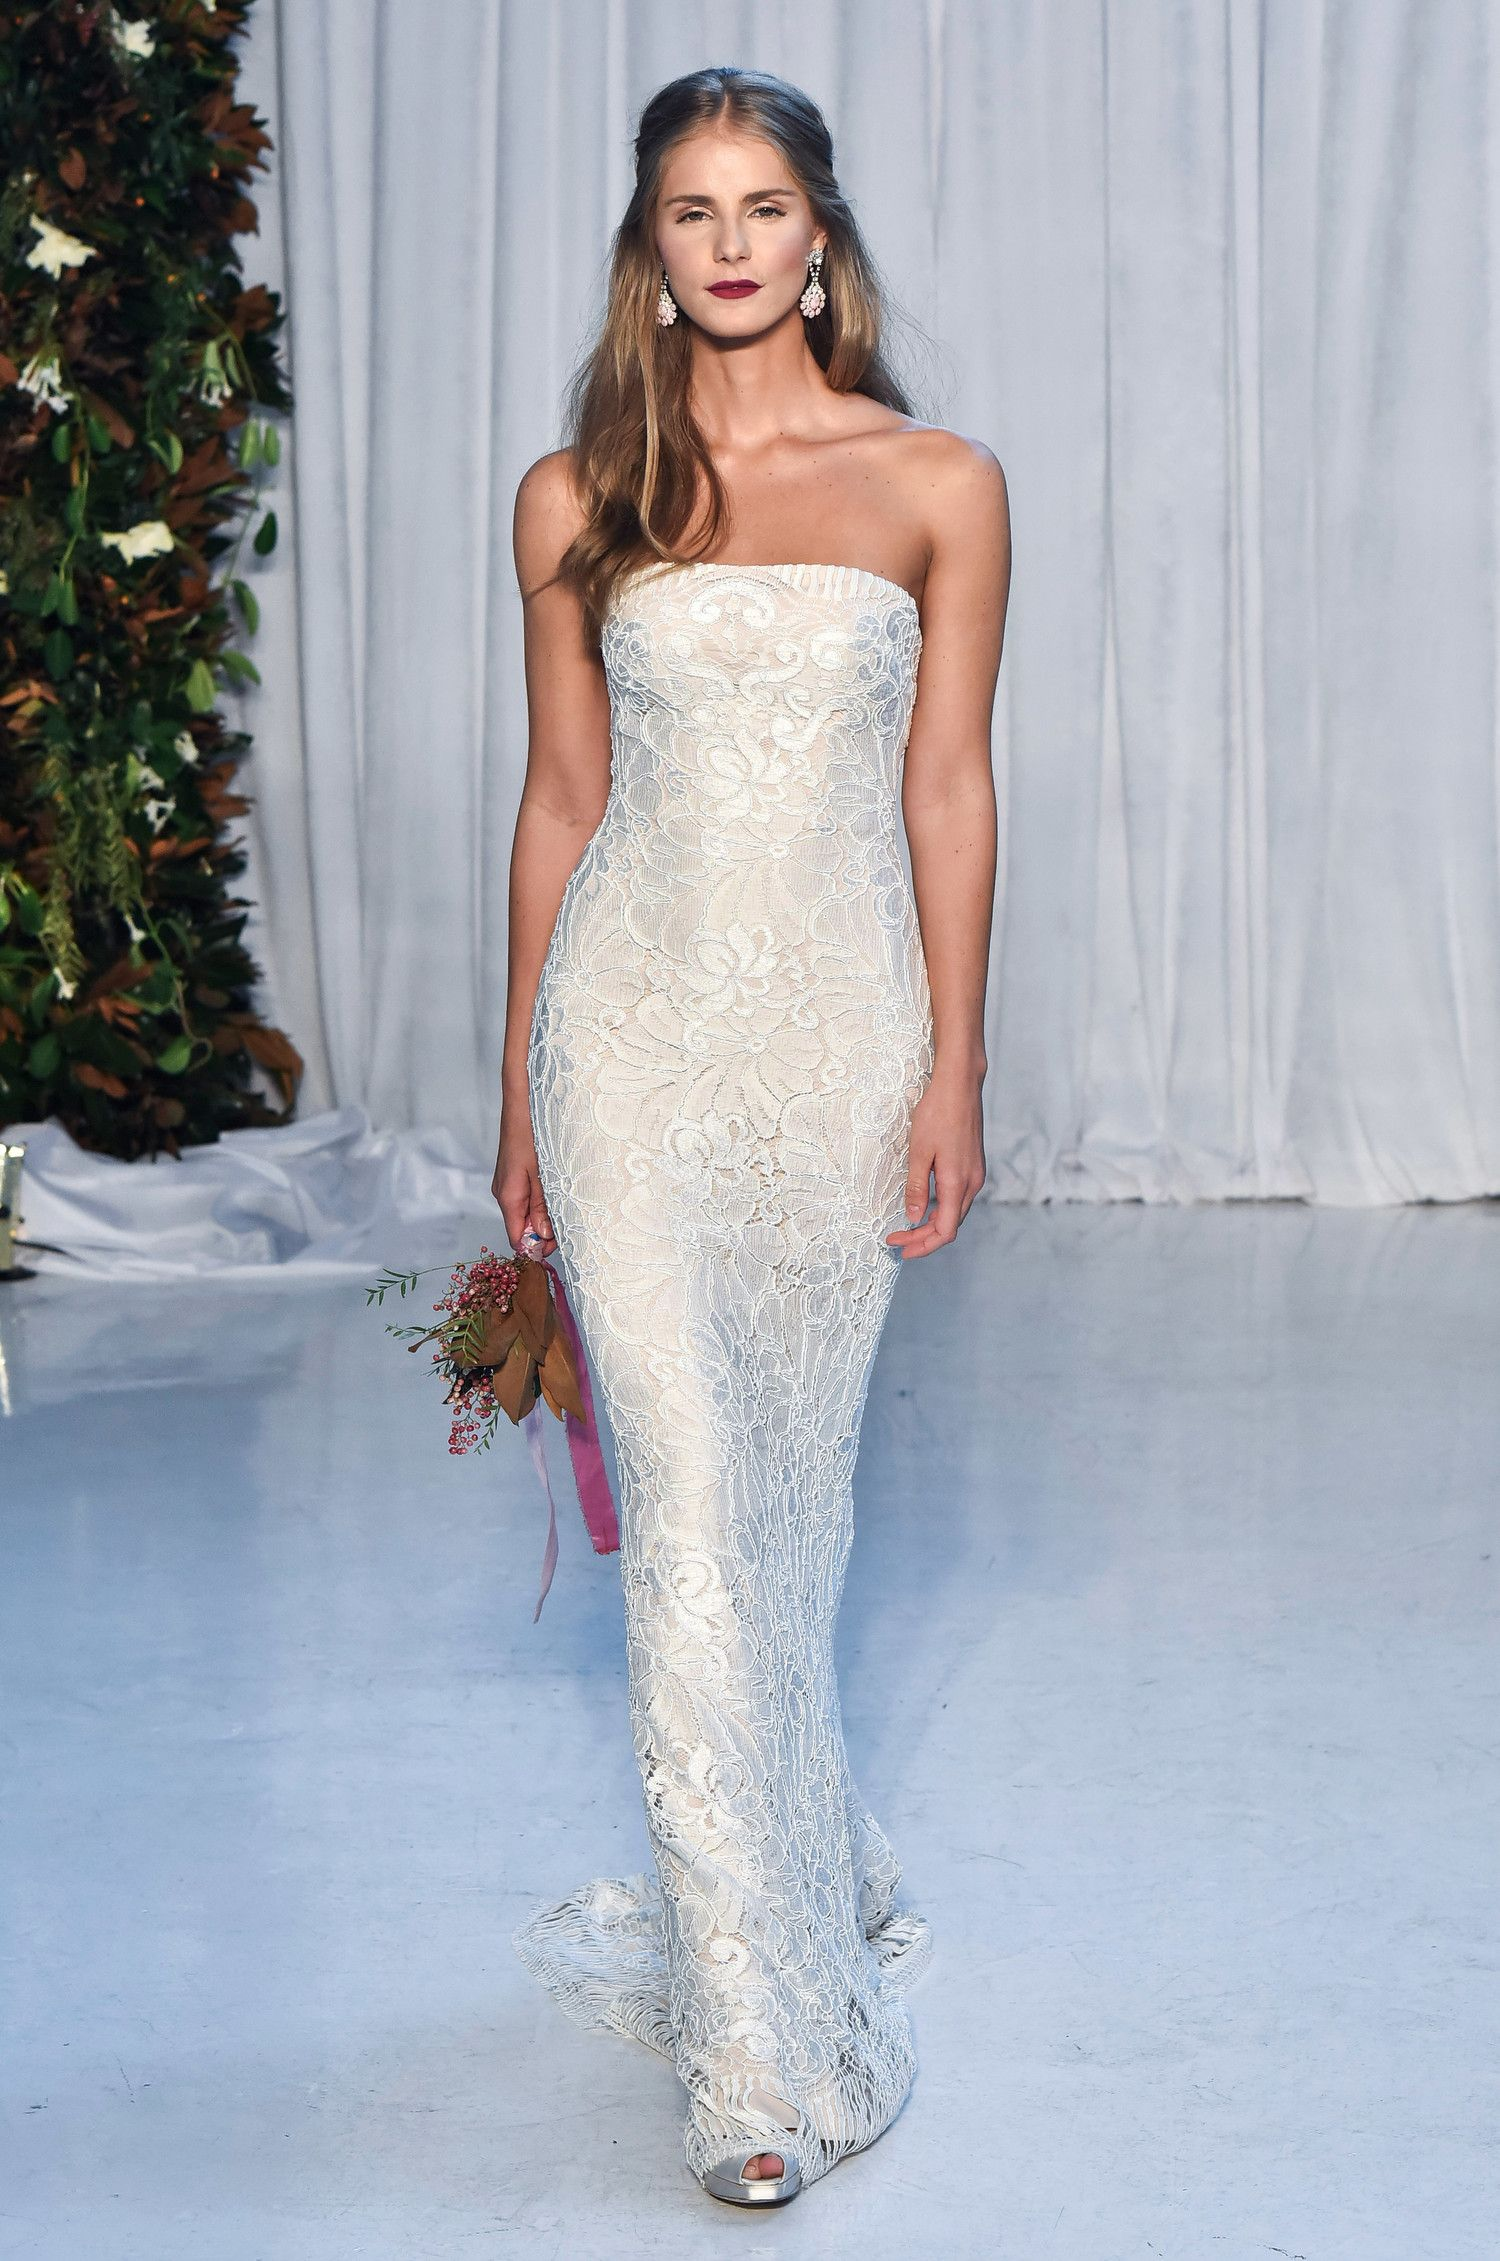 Searching for a wedding dress that merges classic style with timely ...